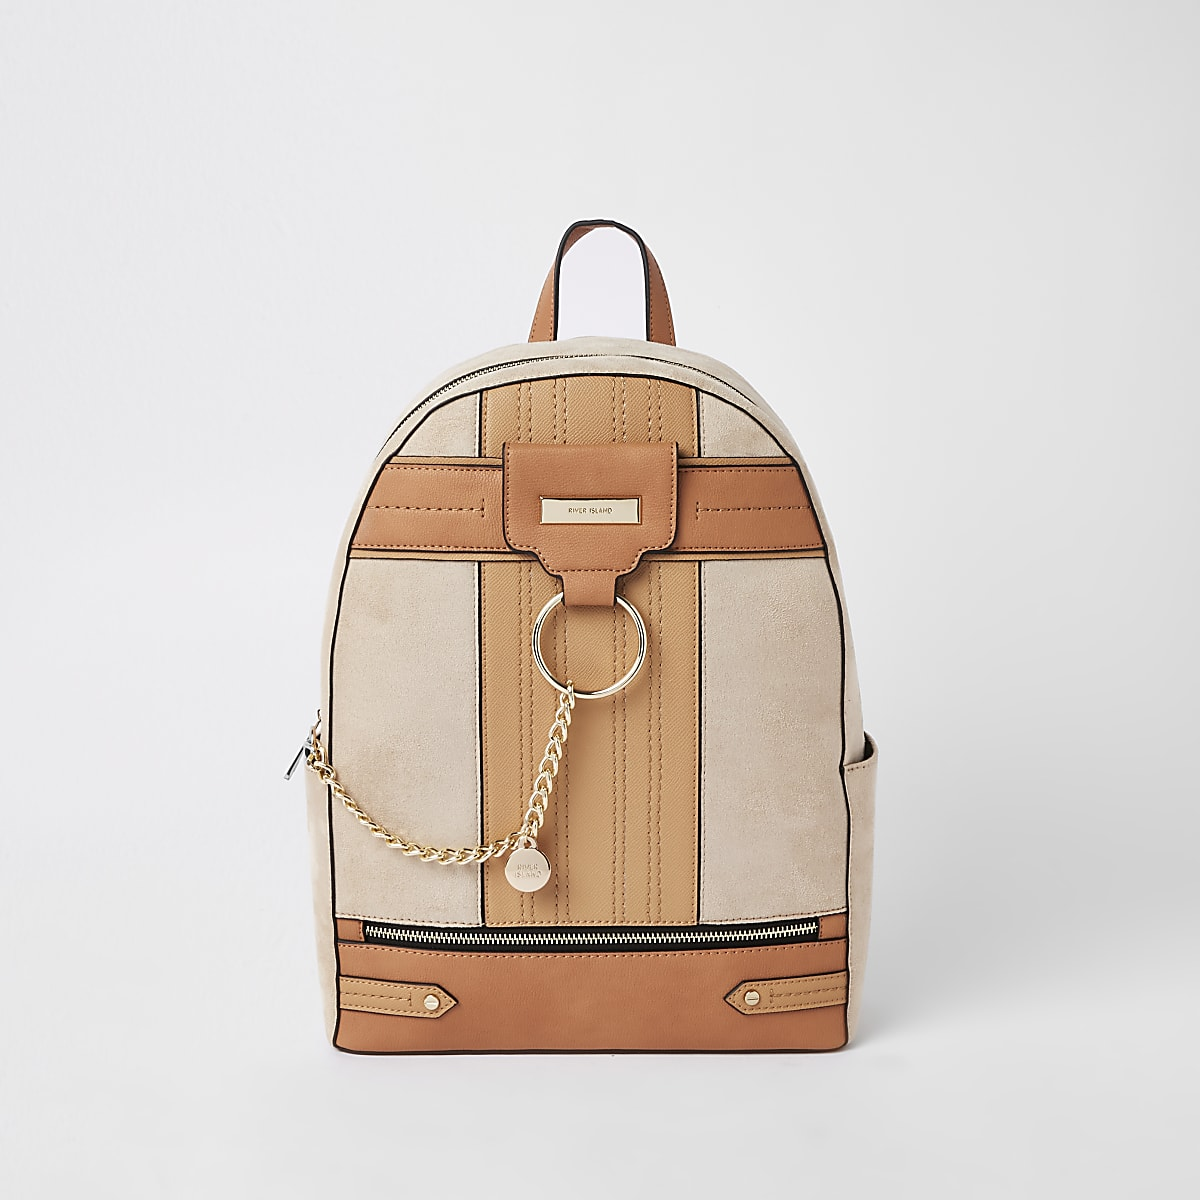 Beige chain front backpack